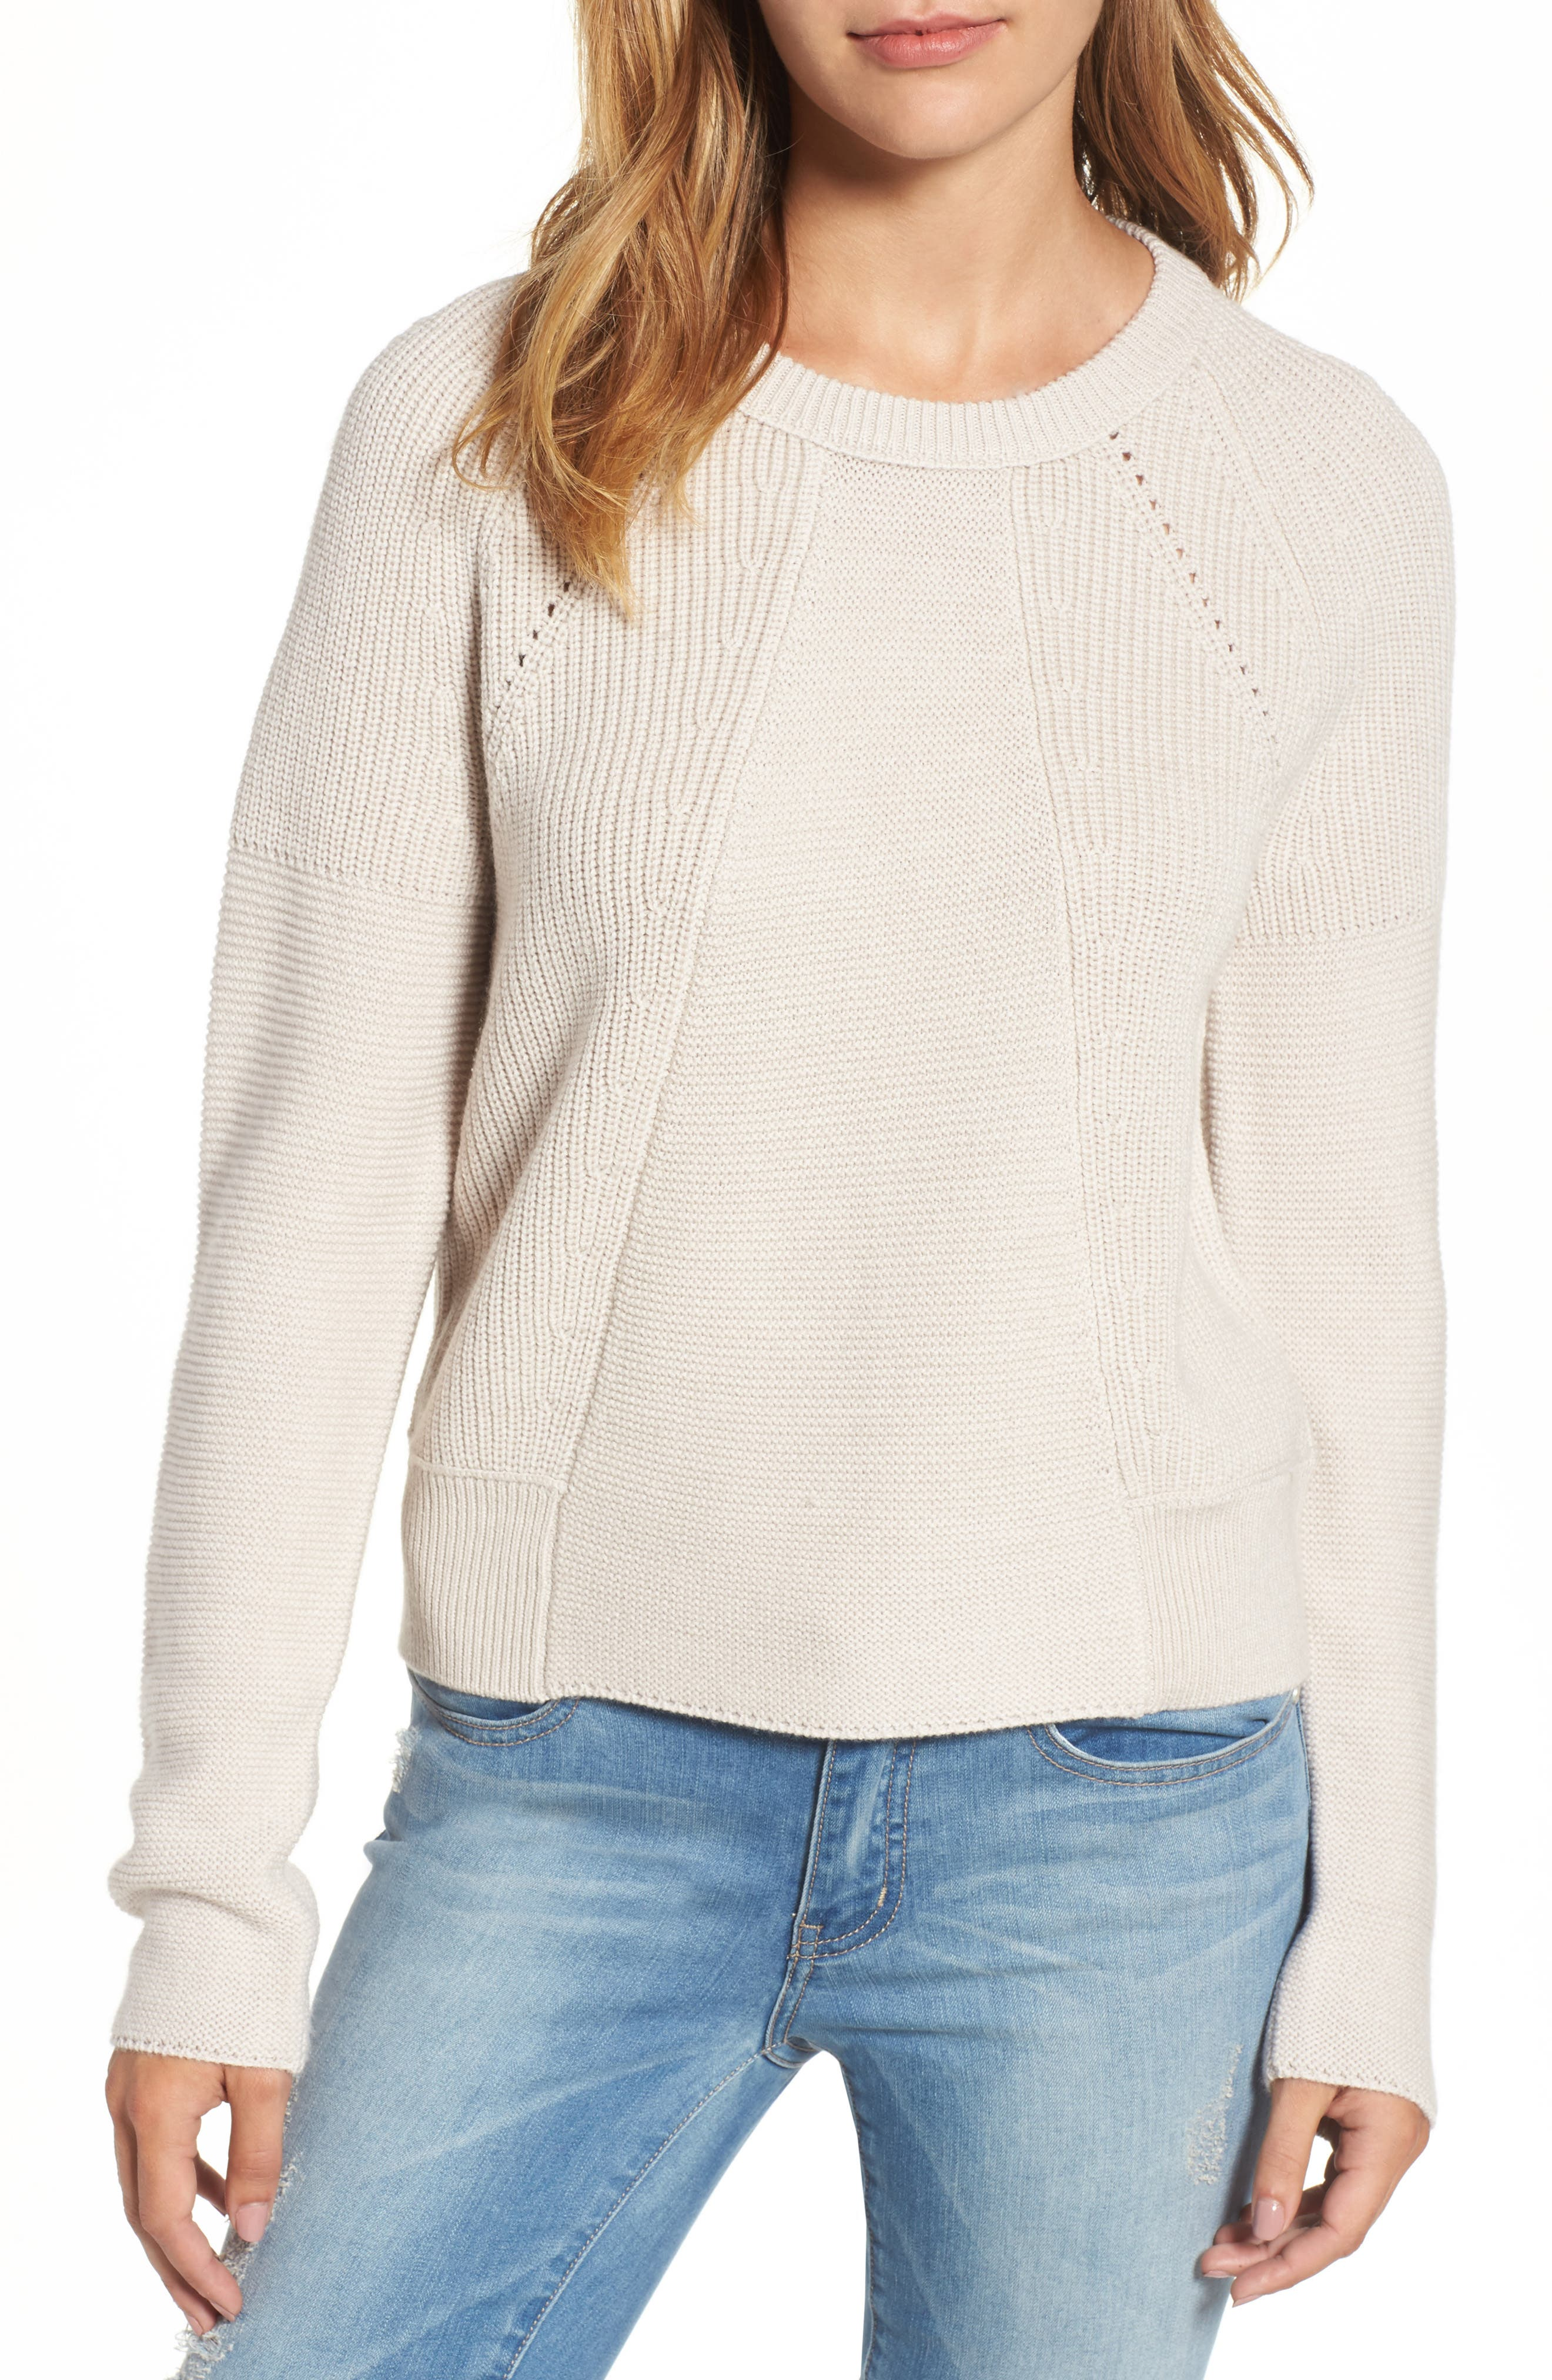 Engineered Stitch Sweater,                         Main,                         color, 251